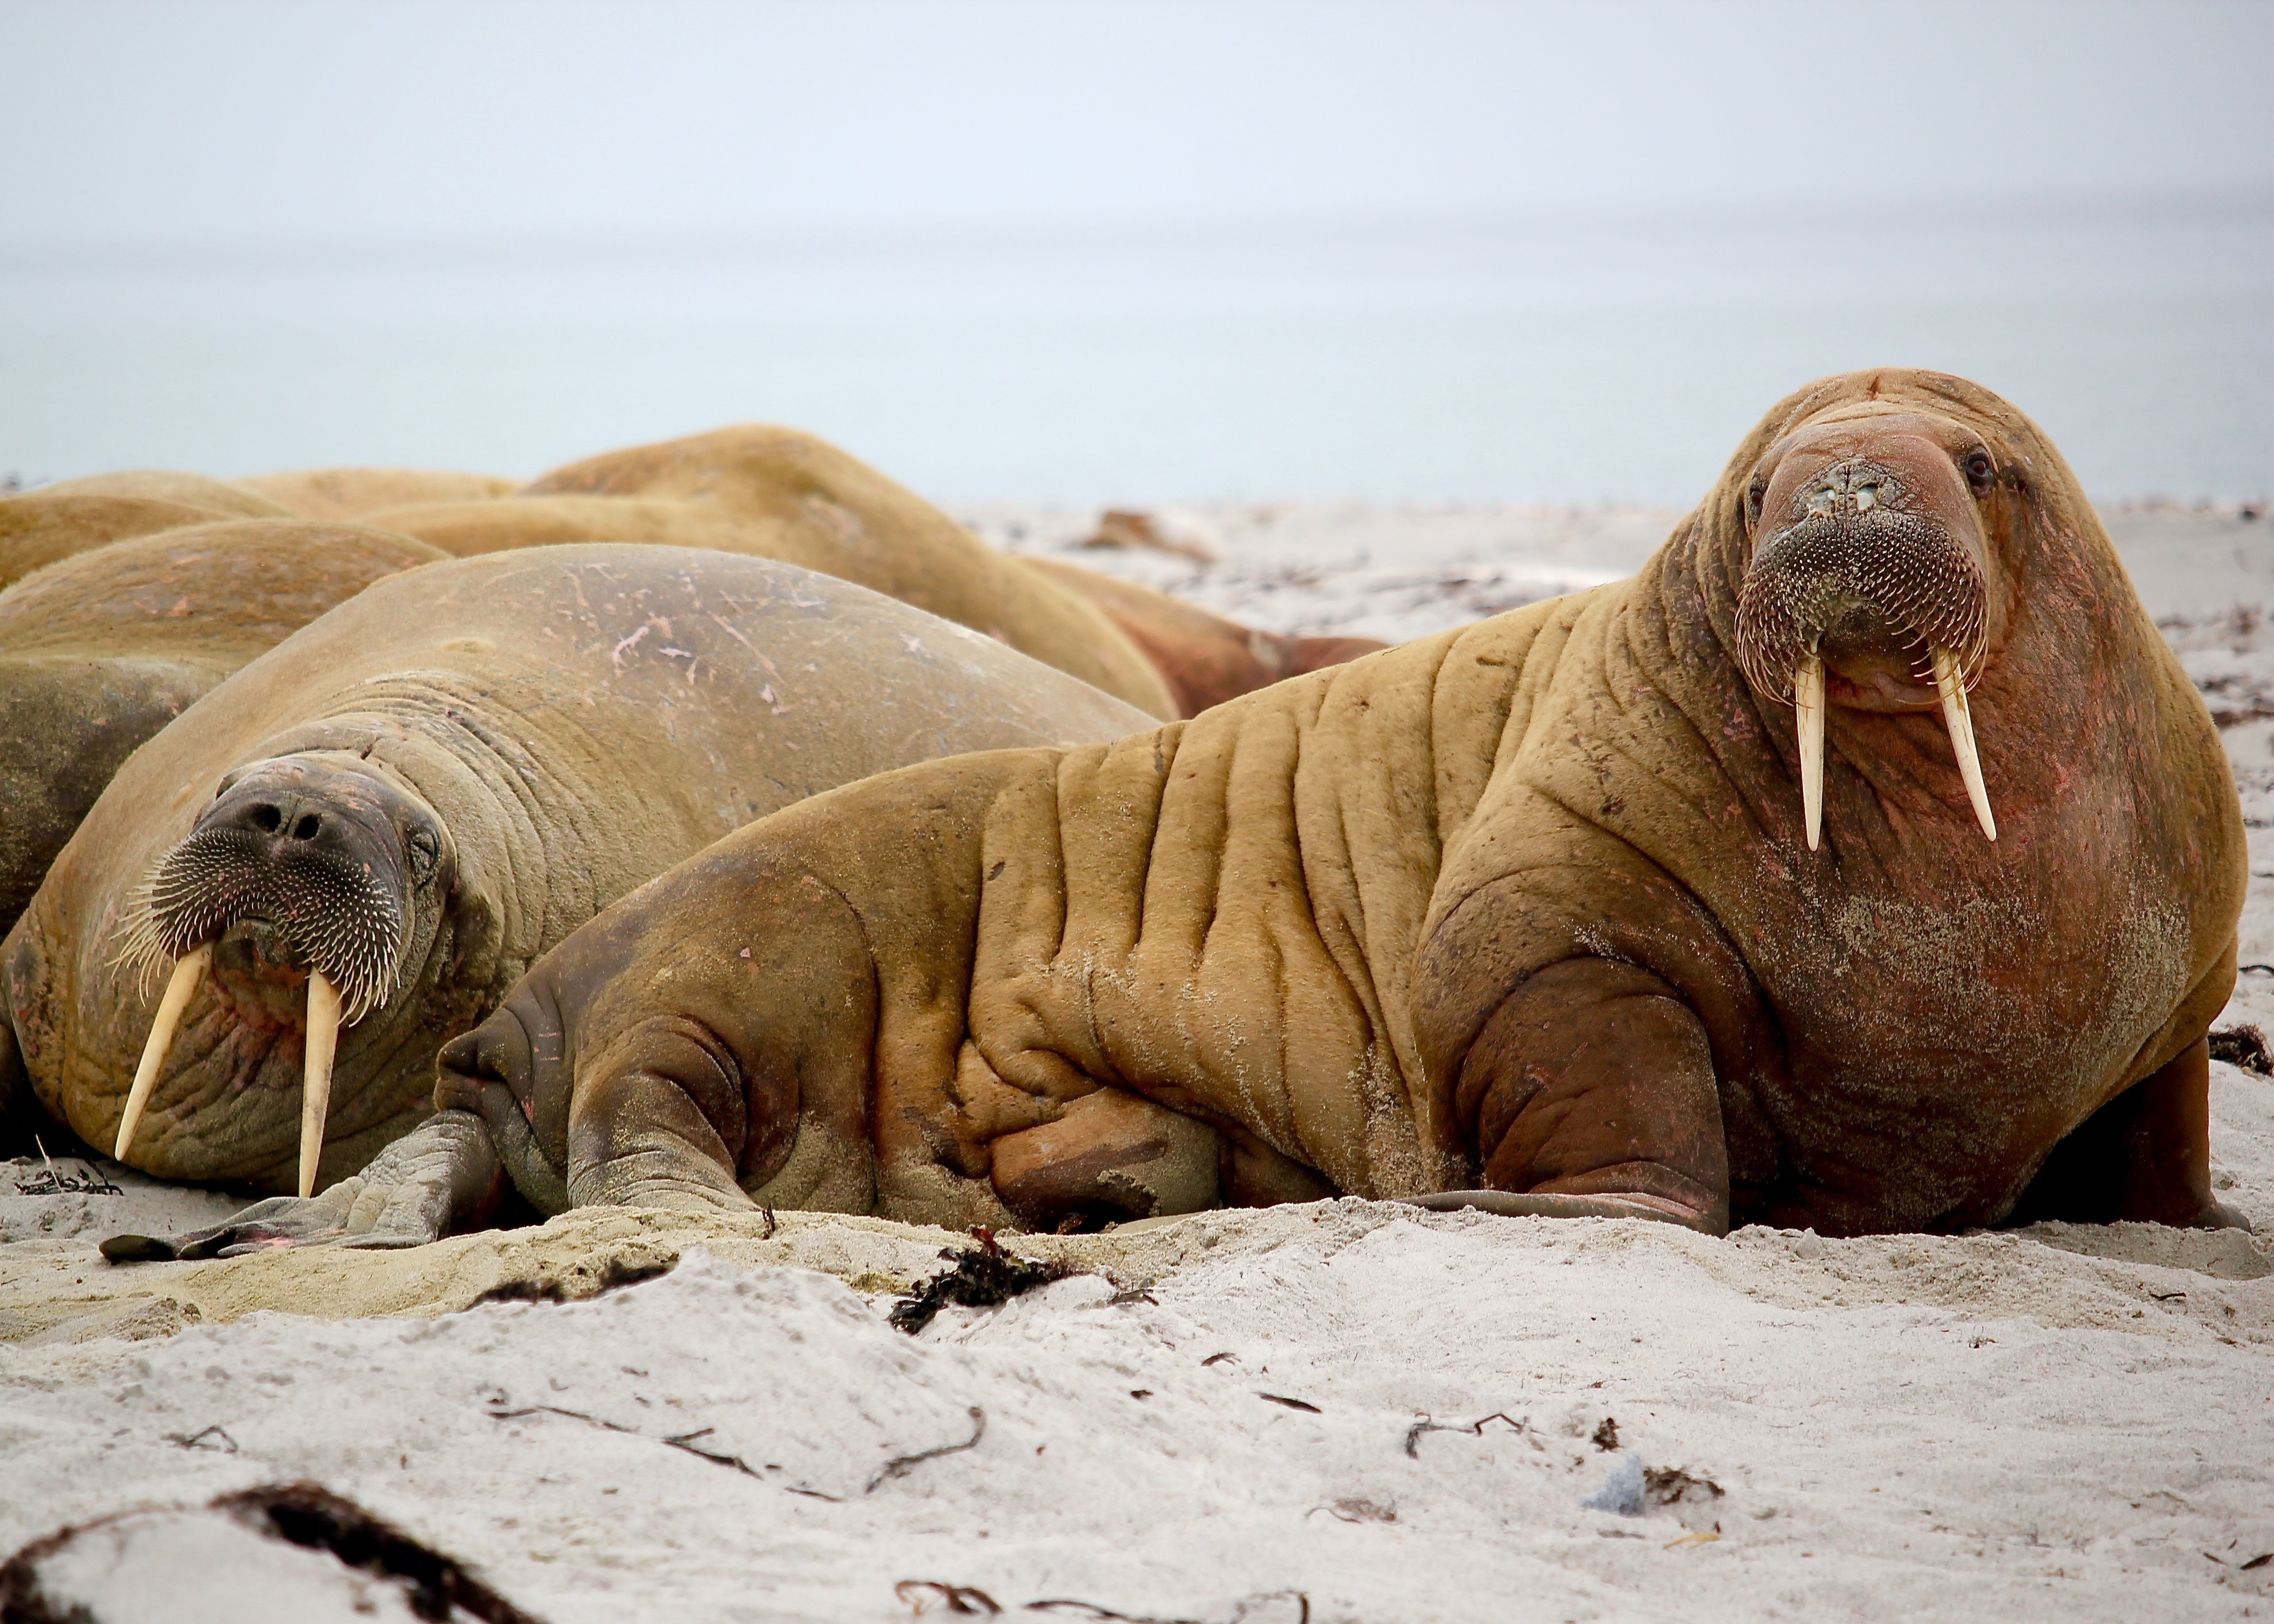 Posing walruses, walrus, animals, canines, mammals